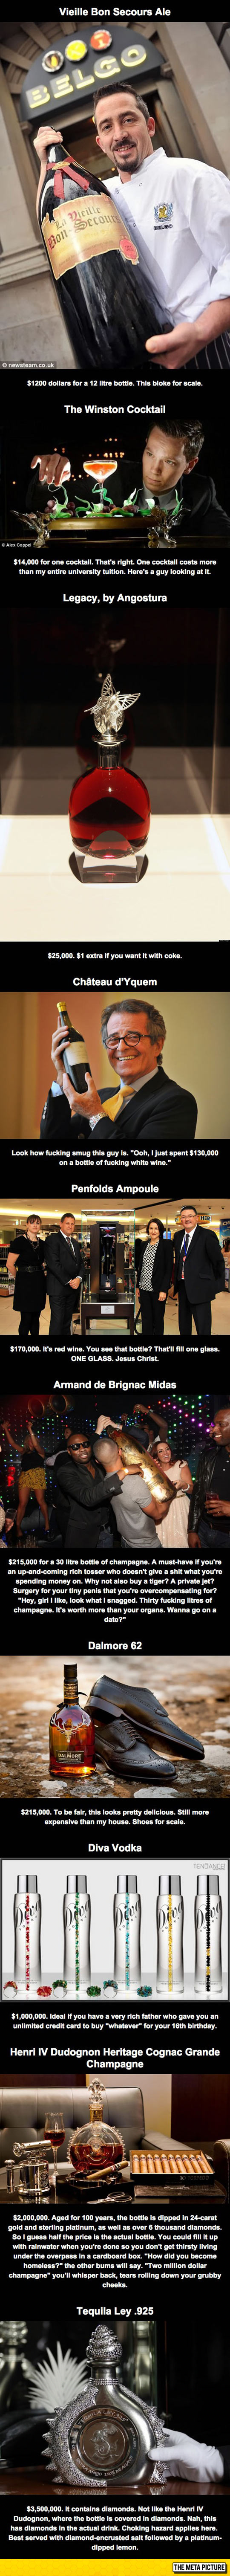 cool-worlds-most-expensive-wine-bottles